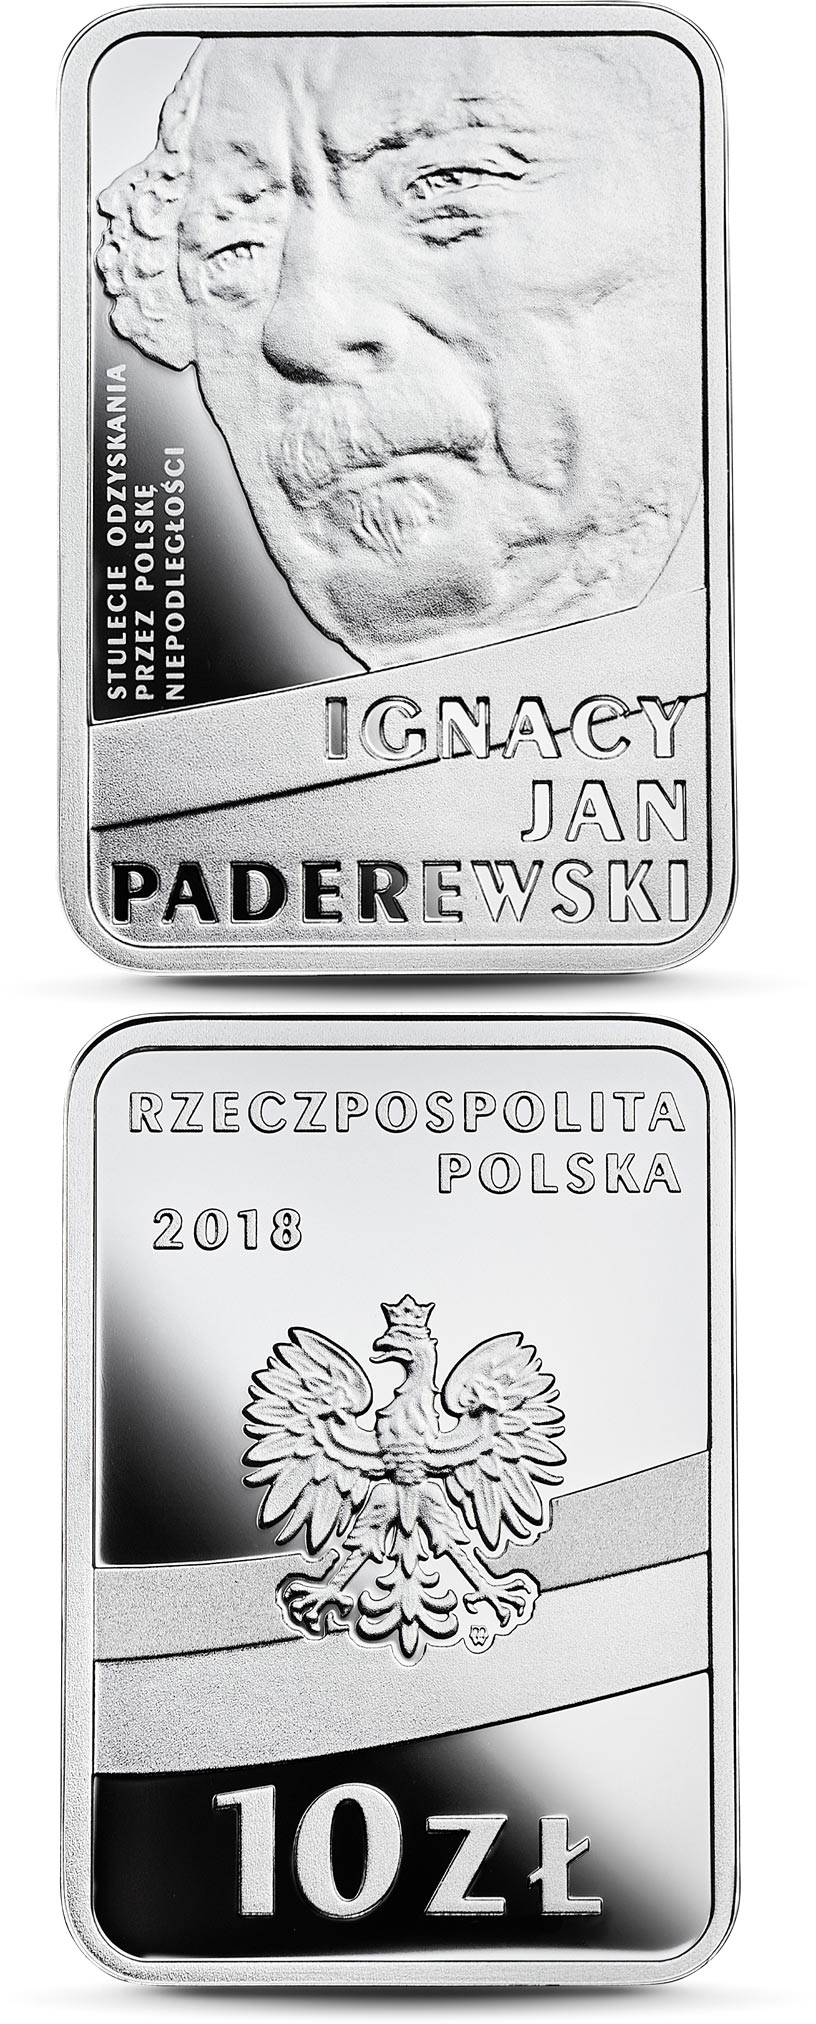 Image of 10 zloty coin - 100th Anniversary of Regaining Independence by Poland – Ignacy Jan Paderewski | Poland 2018.  The Silver coin is of Proof quality.